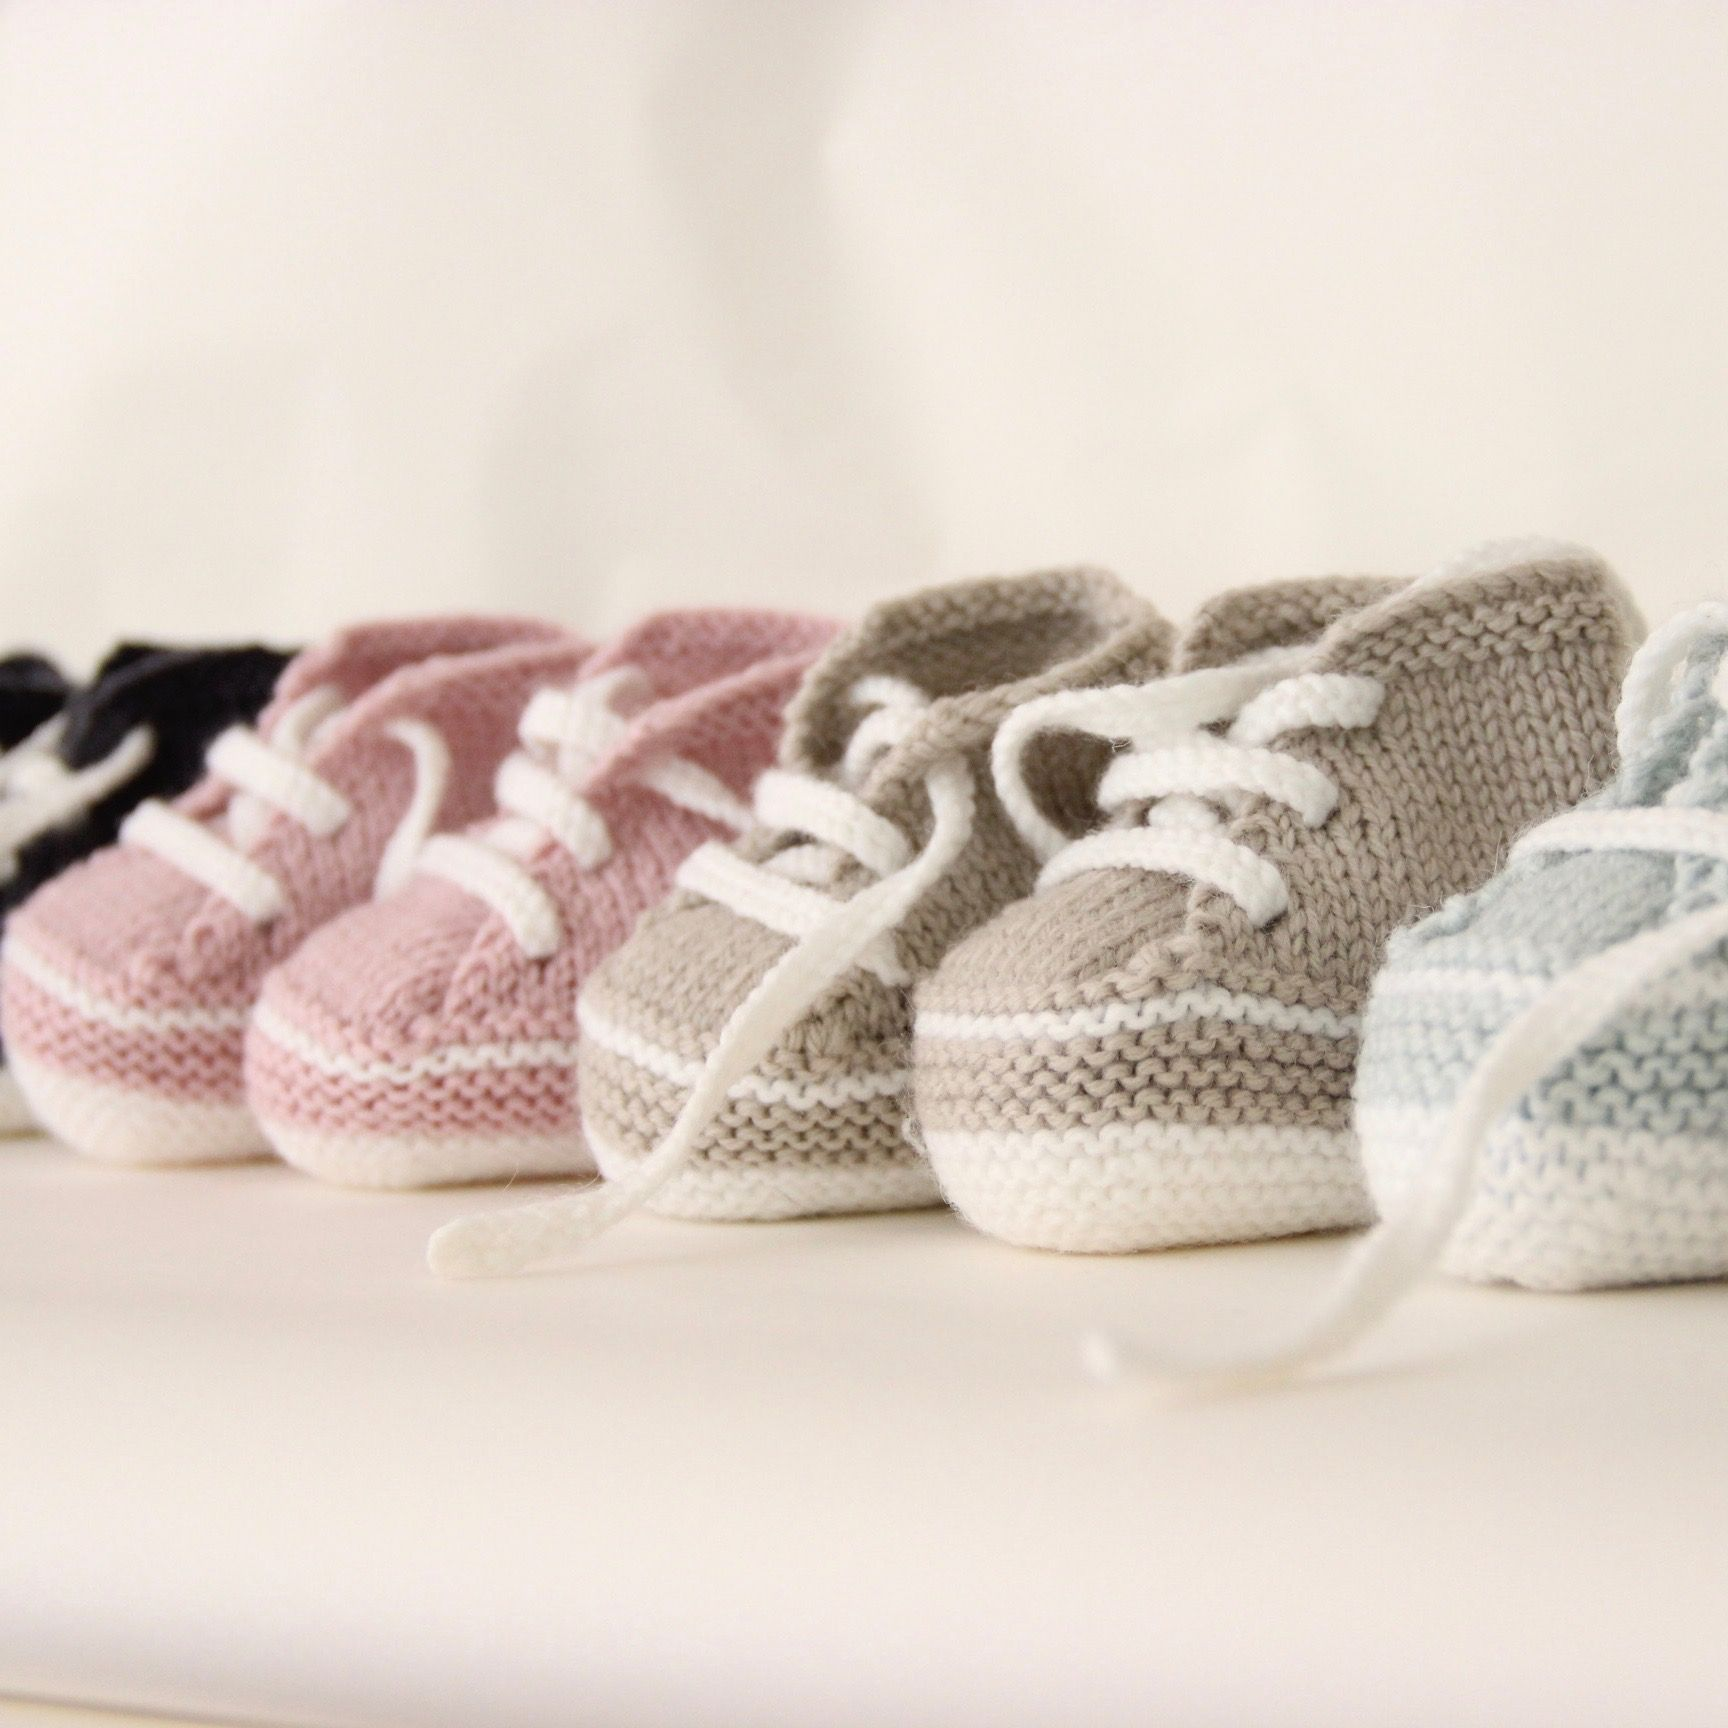 37 / My first sneakers pattern by Florence Merlin   Zapatitos para ...